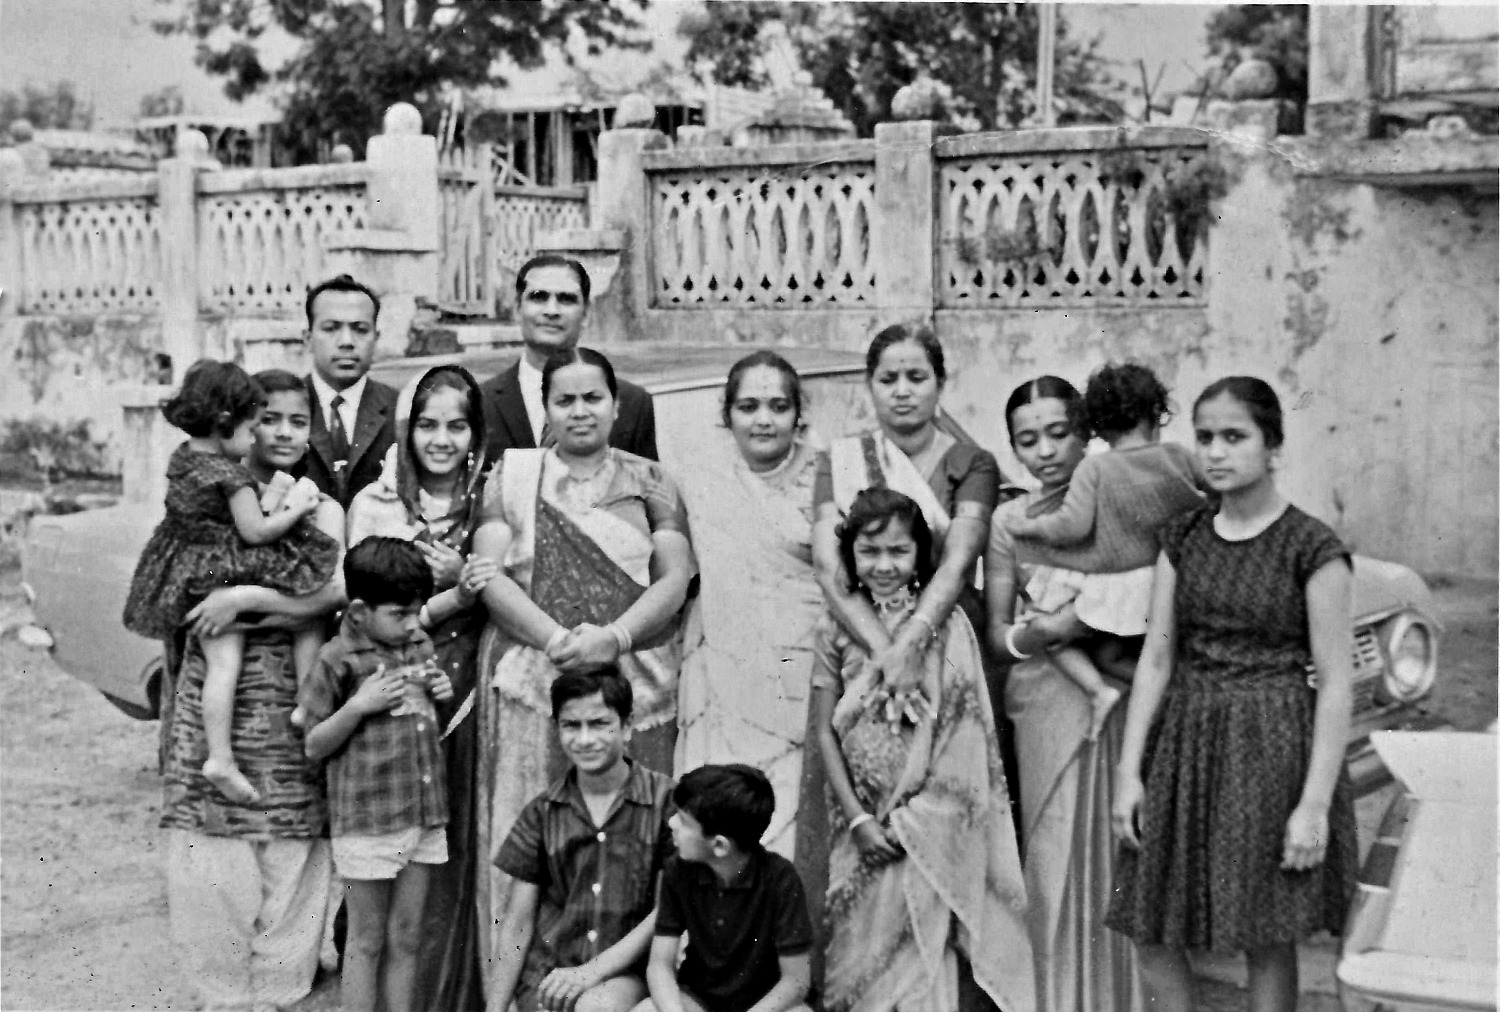 A 1967 photo of Hitesh's family, aunts, uncle and cousins taken at his first home in Nairobi Kenya. Hitesh is seating in the front and wearing a black shirt.